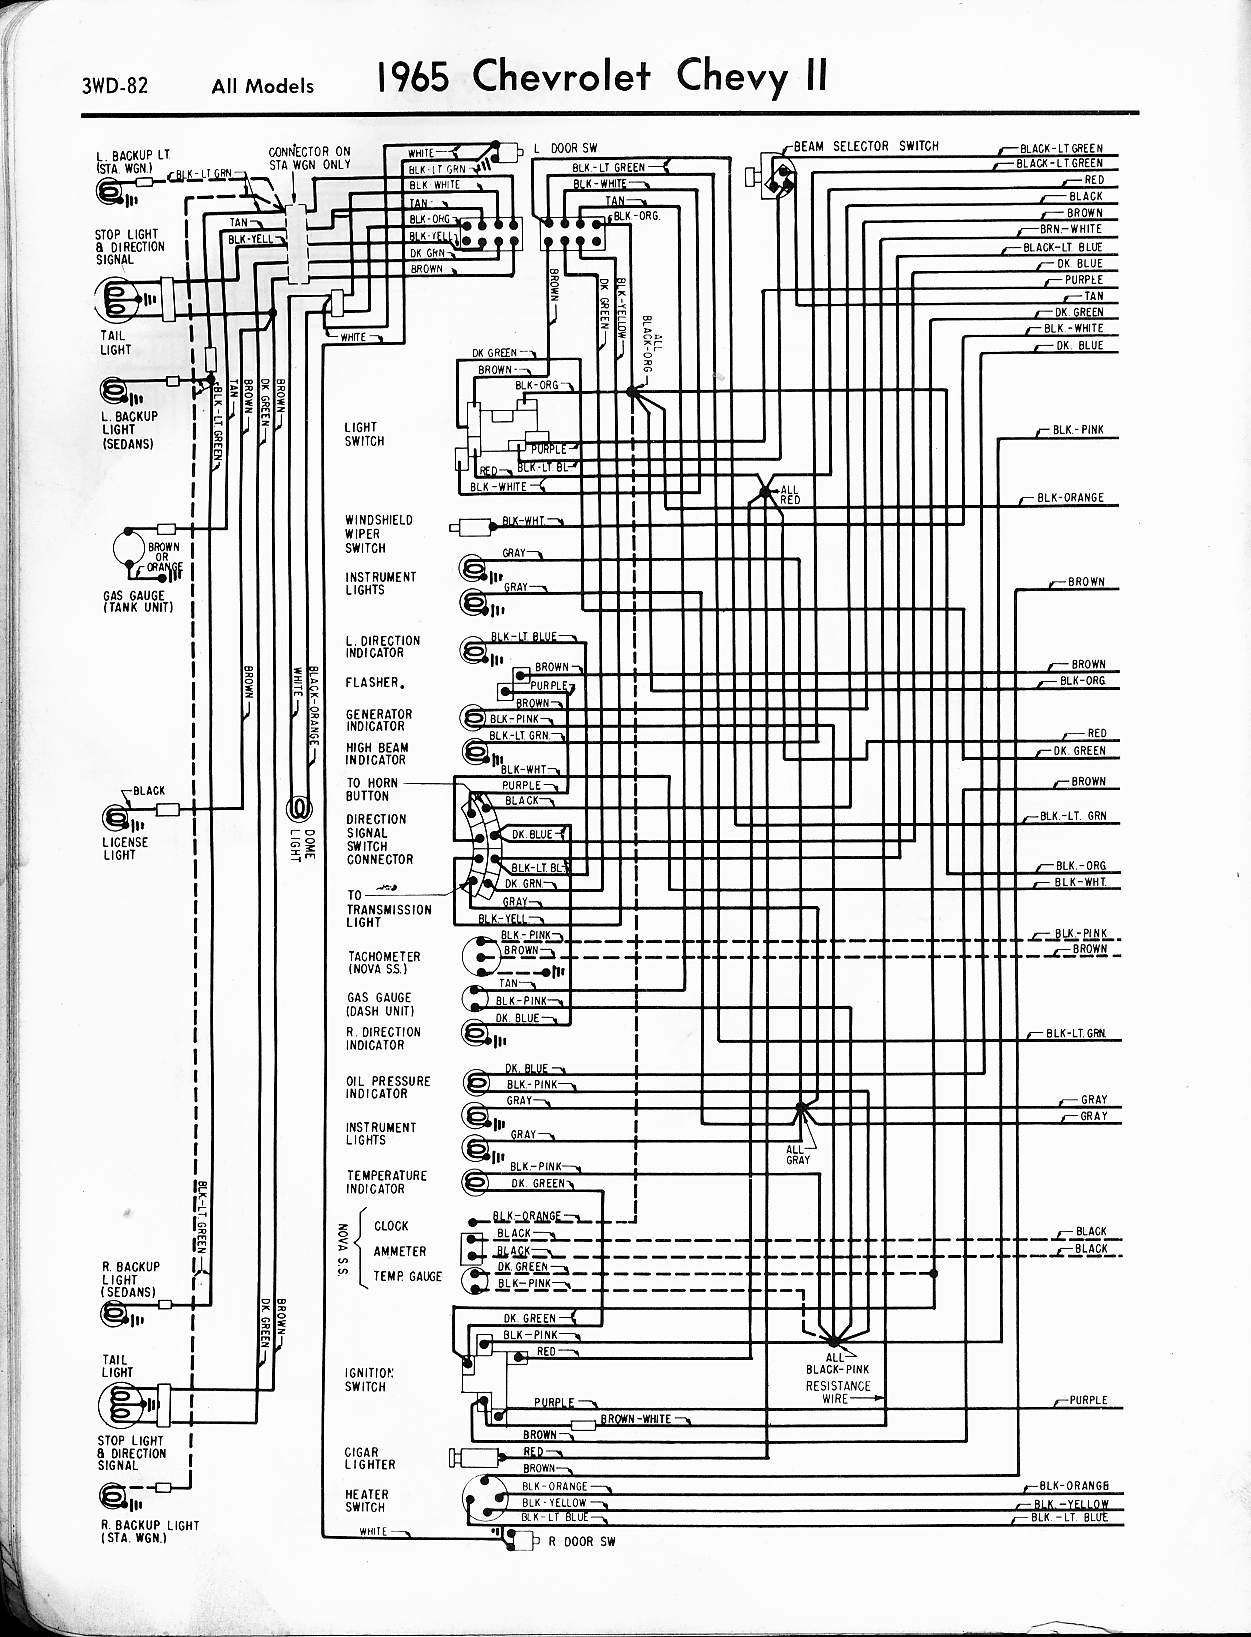 gm wiring diagram for 66 chevelle 33 wiring diagram